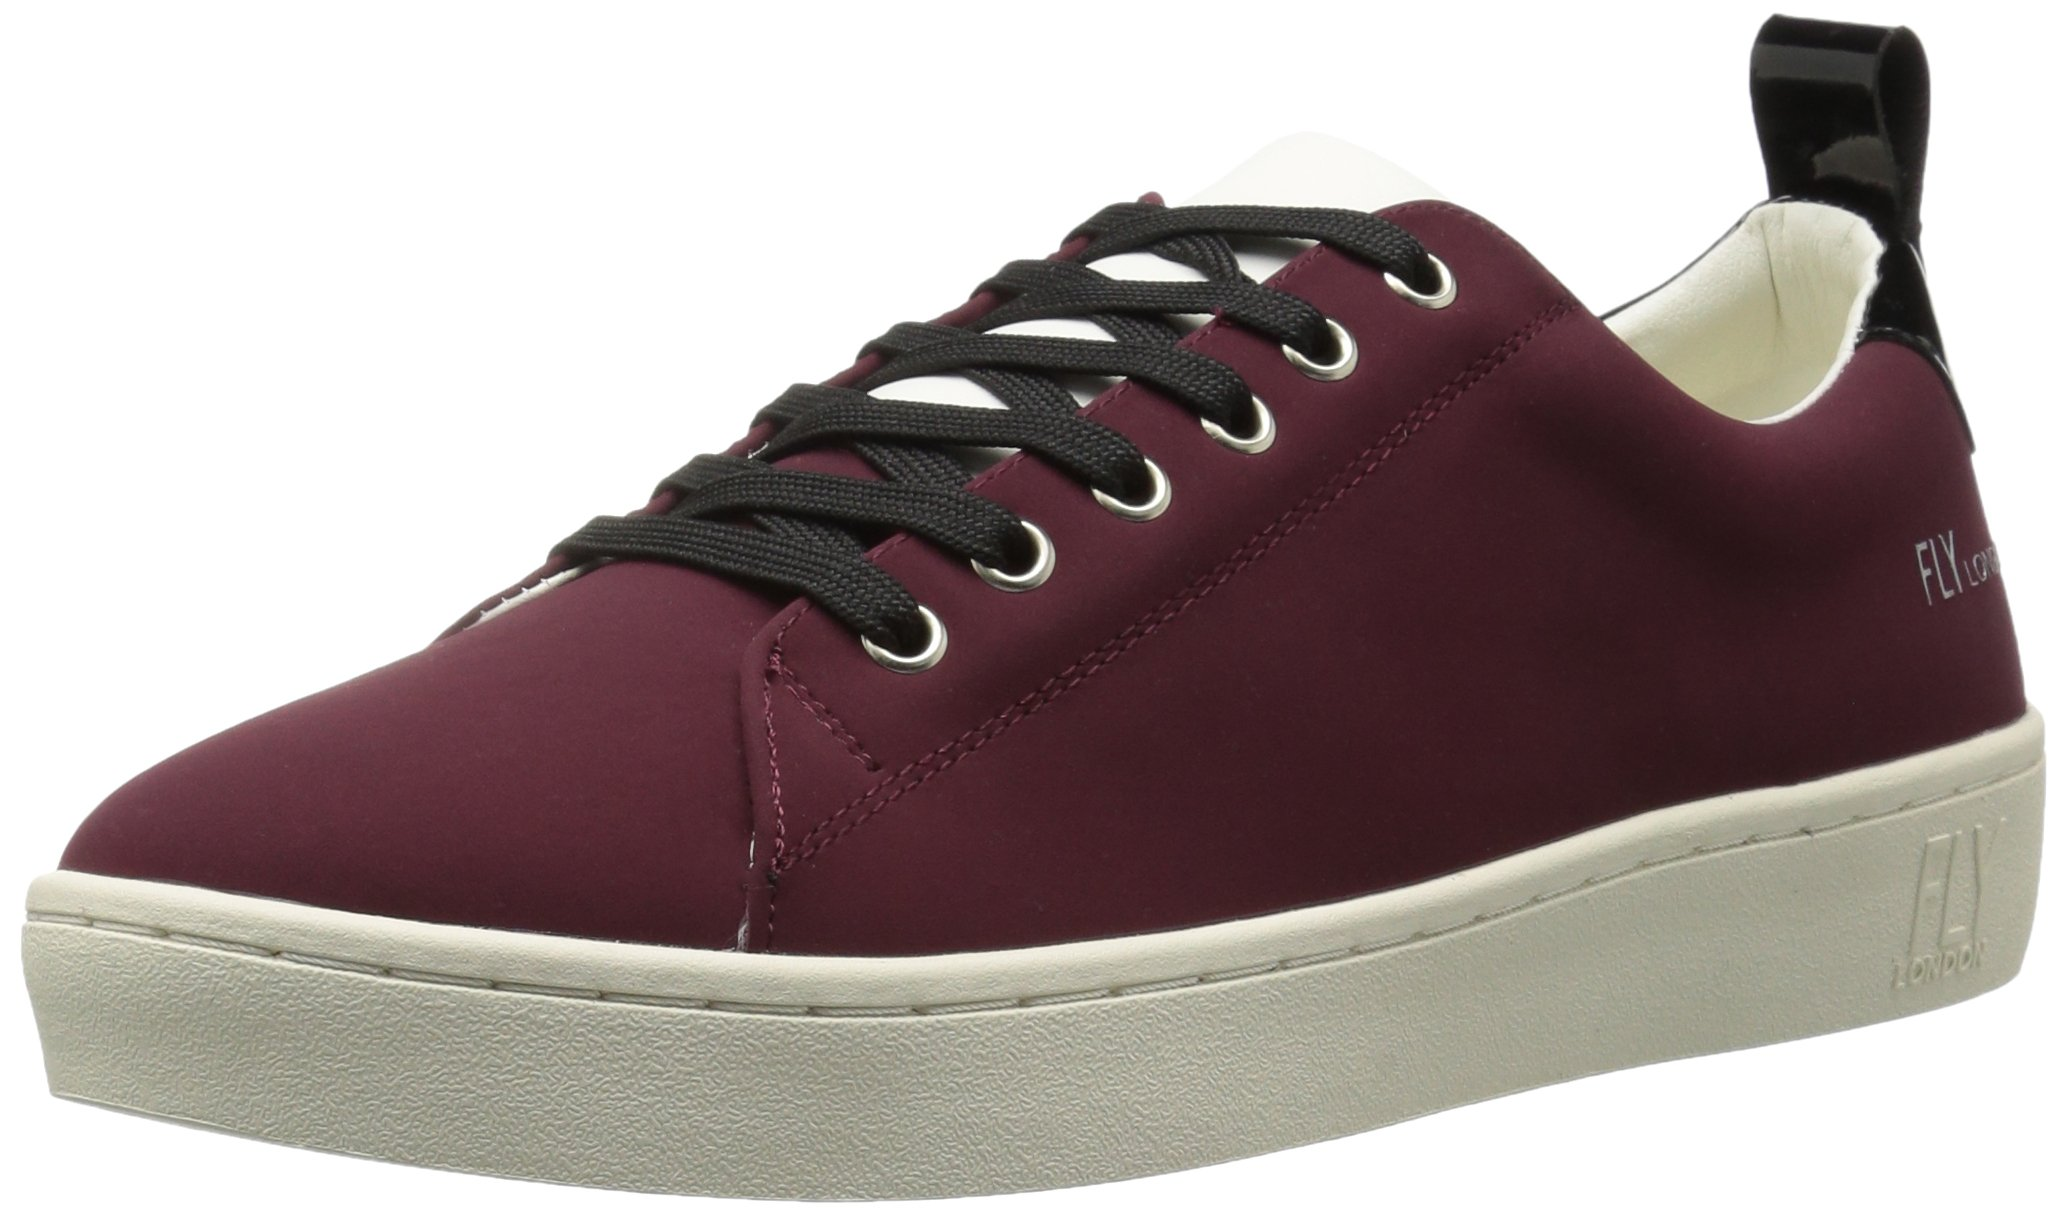 FLY London Women's MACO833FLY Sneaker, Bordeaux/Black Nubuck/Patent, 37 M EU (6.5-7 US)